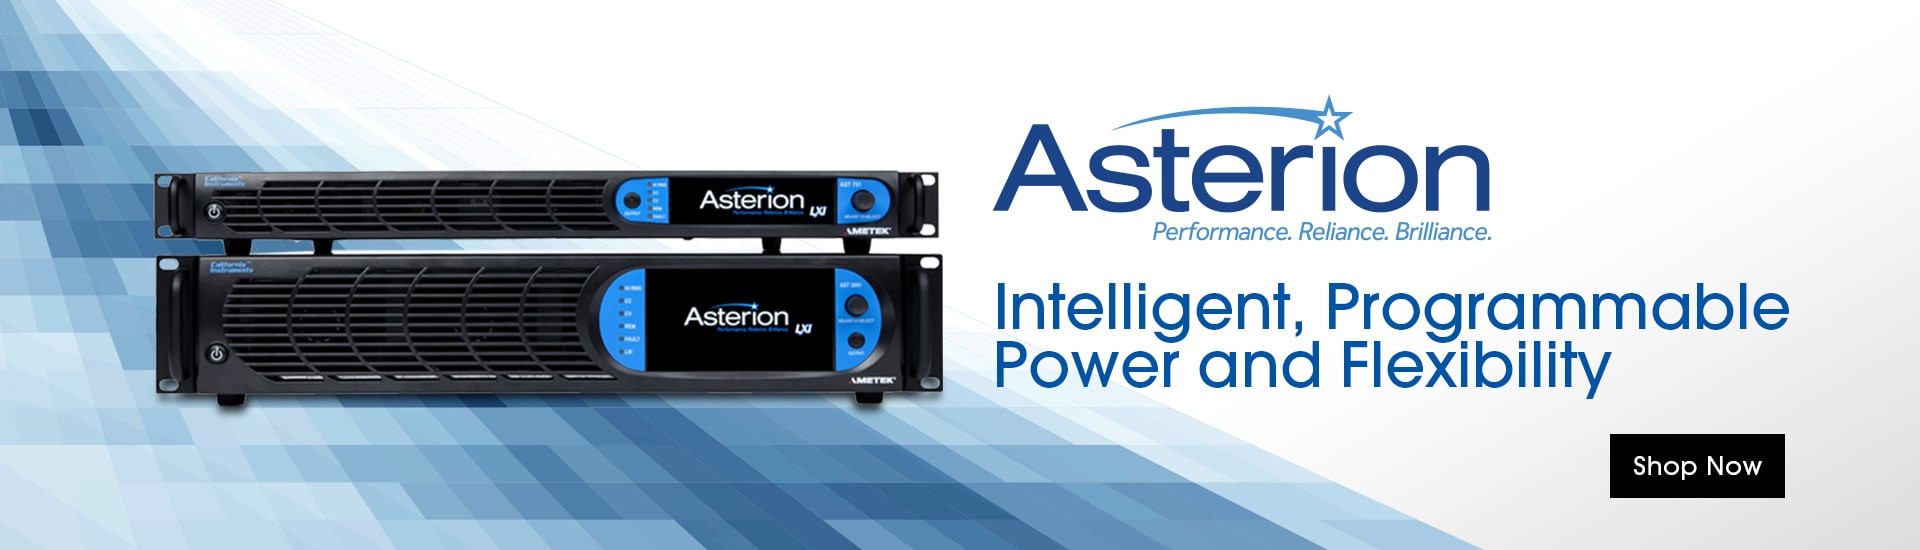 Asterion: Intelligent, Programmable Power and Flexibility. Shop Now.